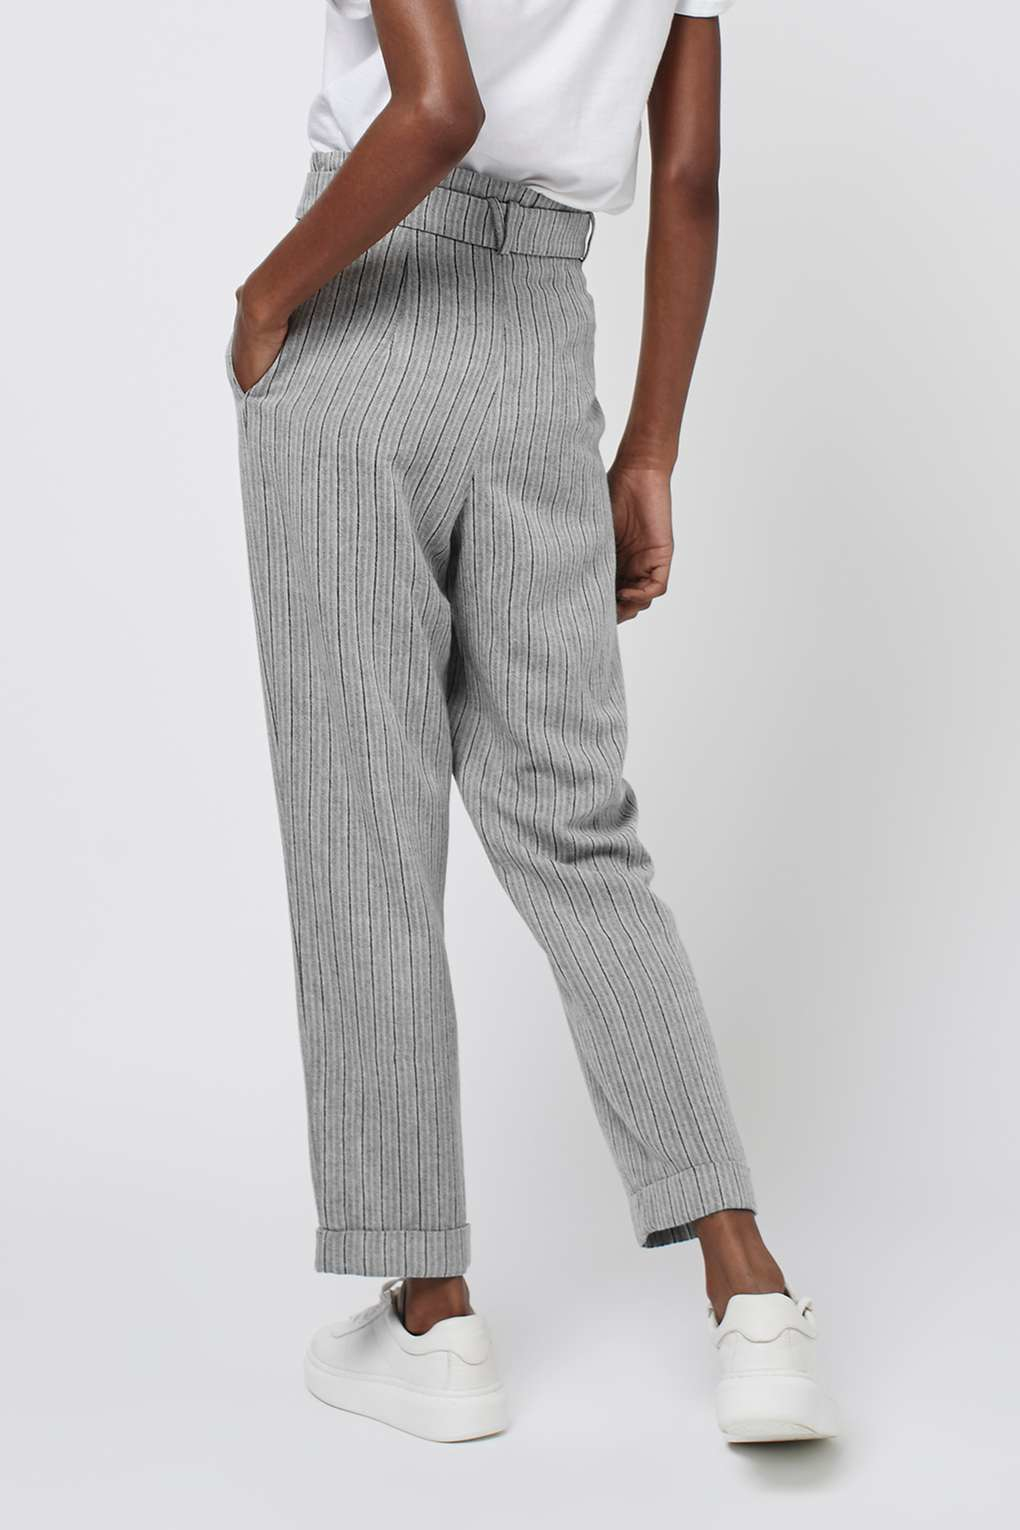 Topshop Stripe Paperbag Trousers In Gray Lyst